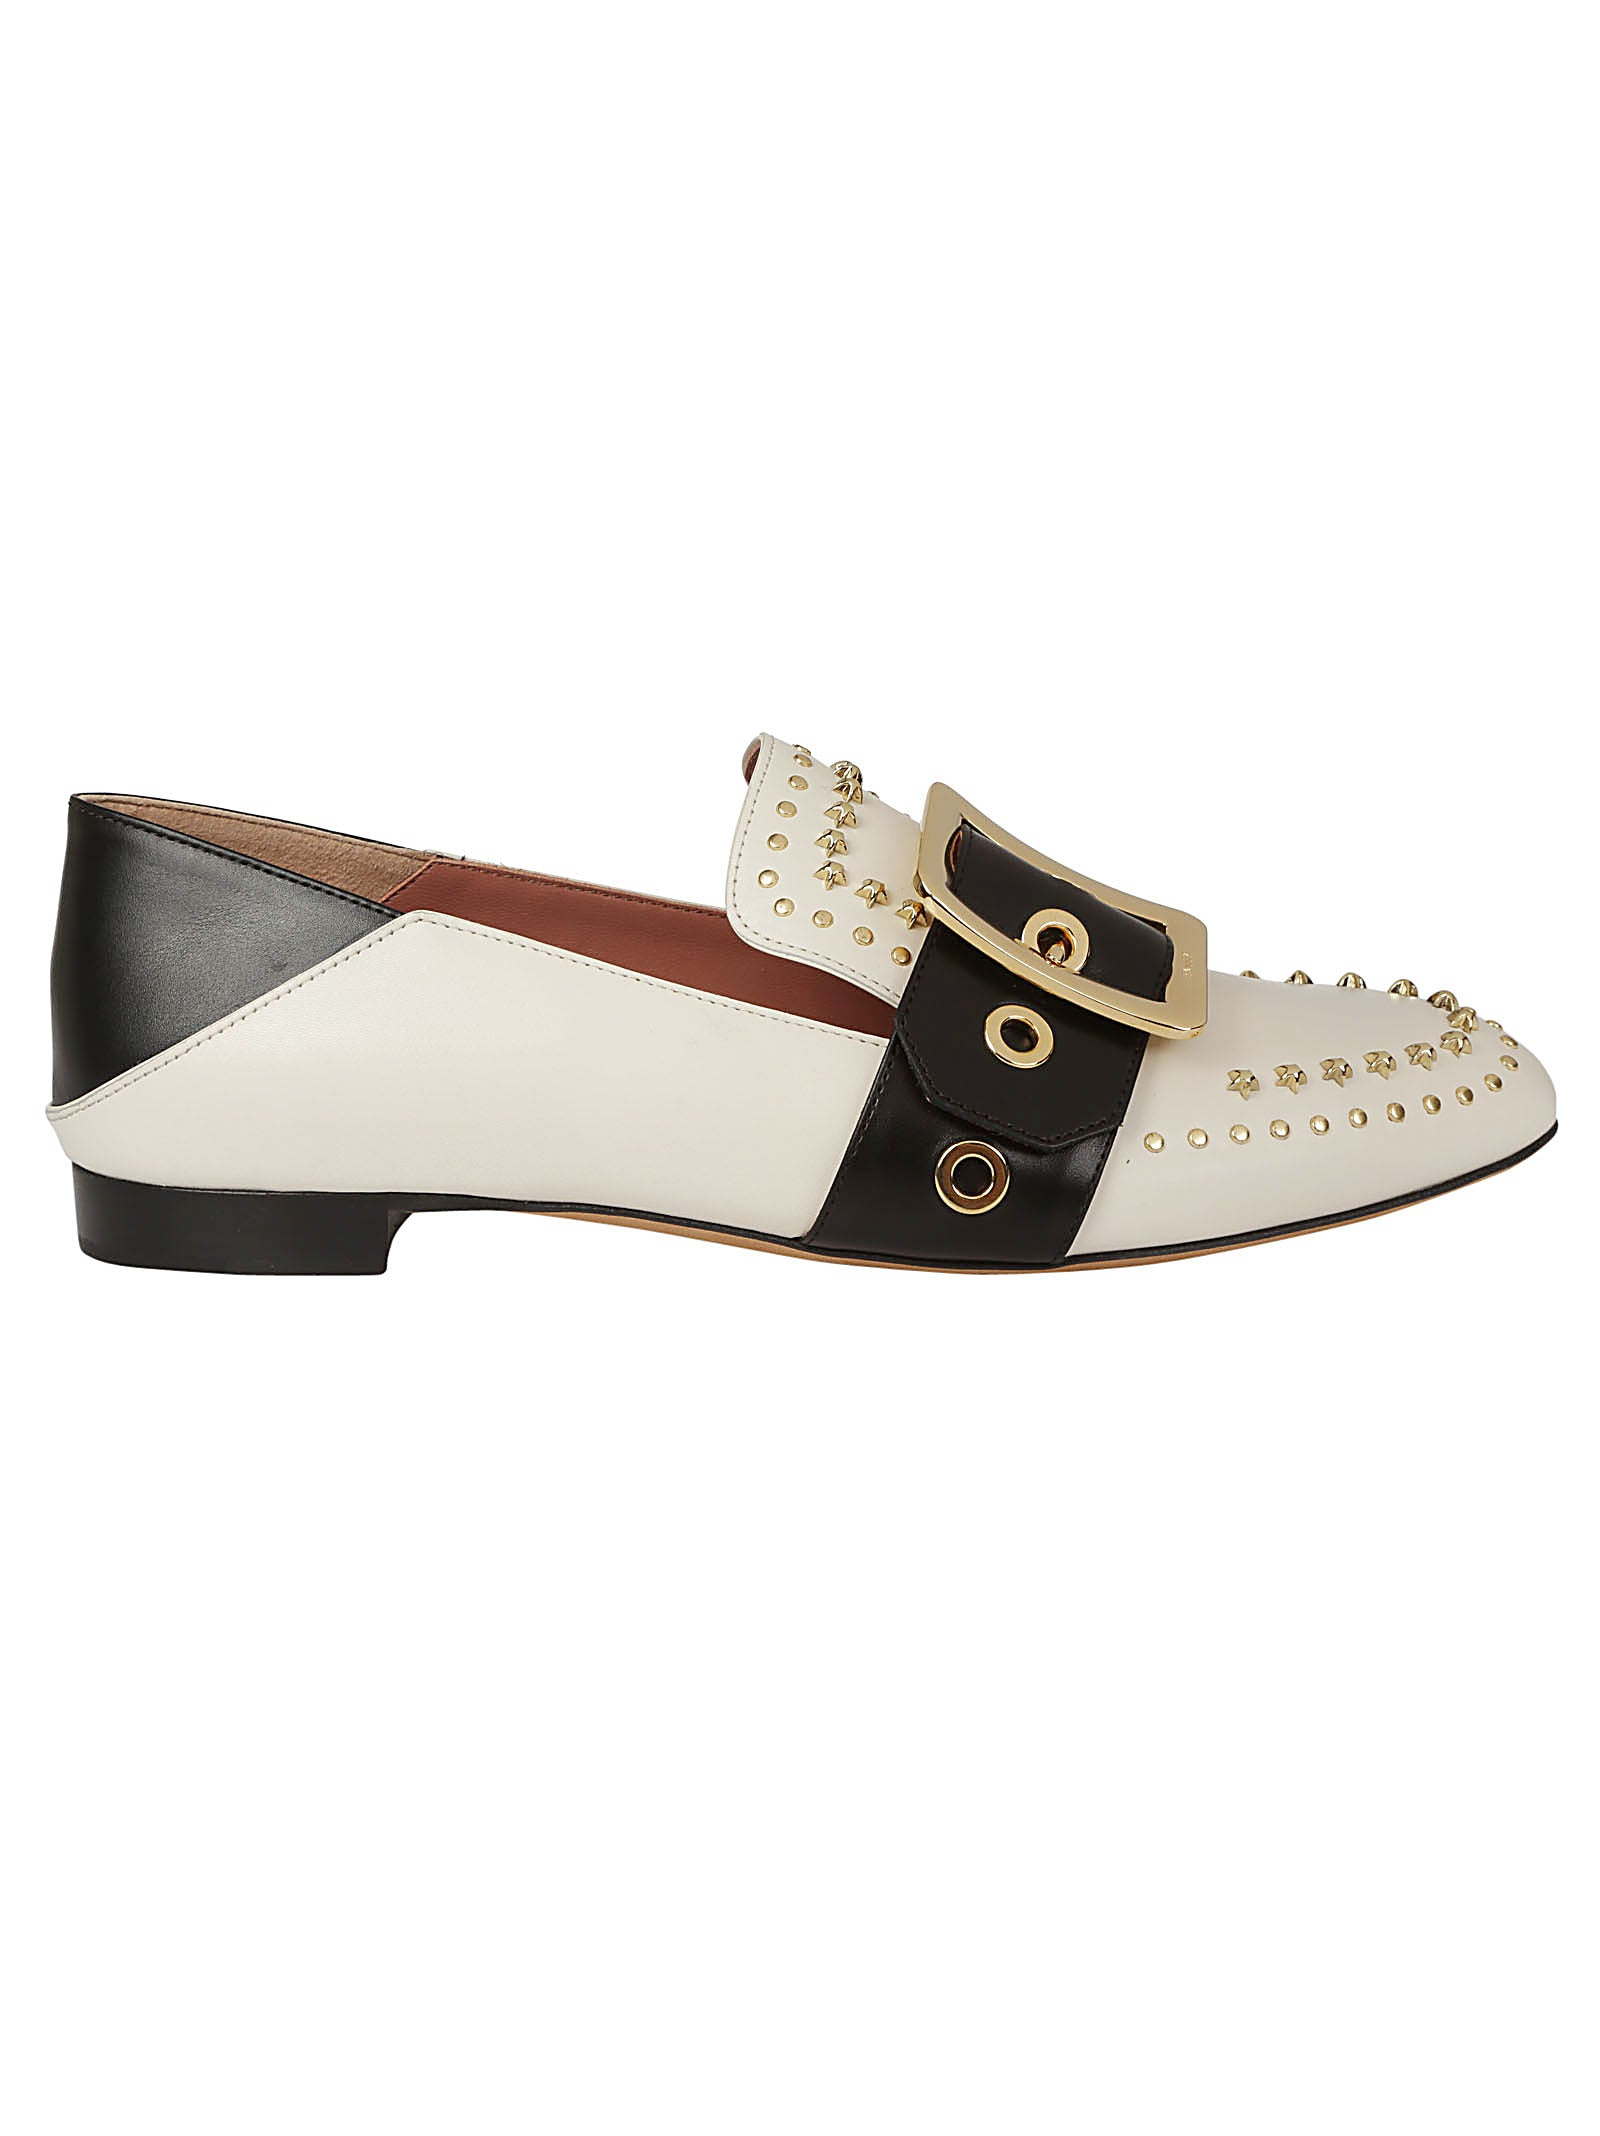 Bally Janelle Loafers, White